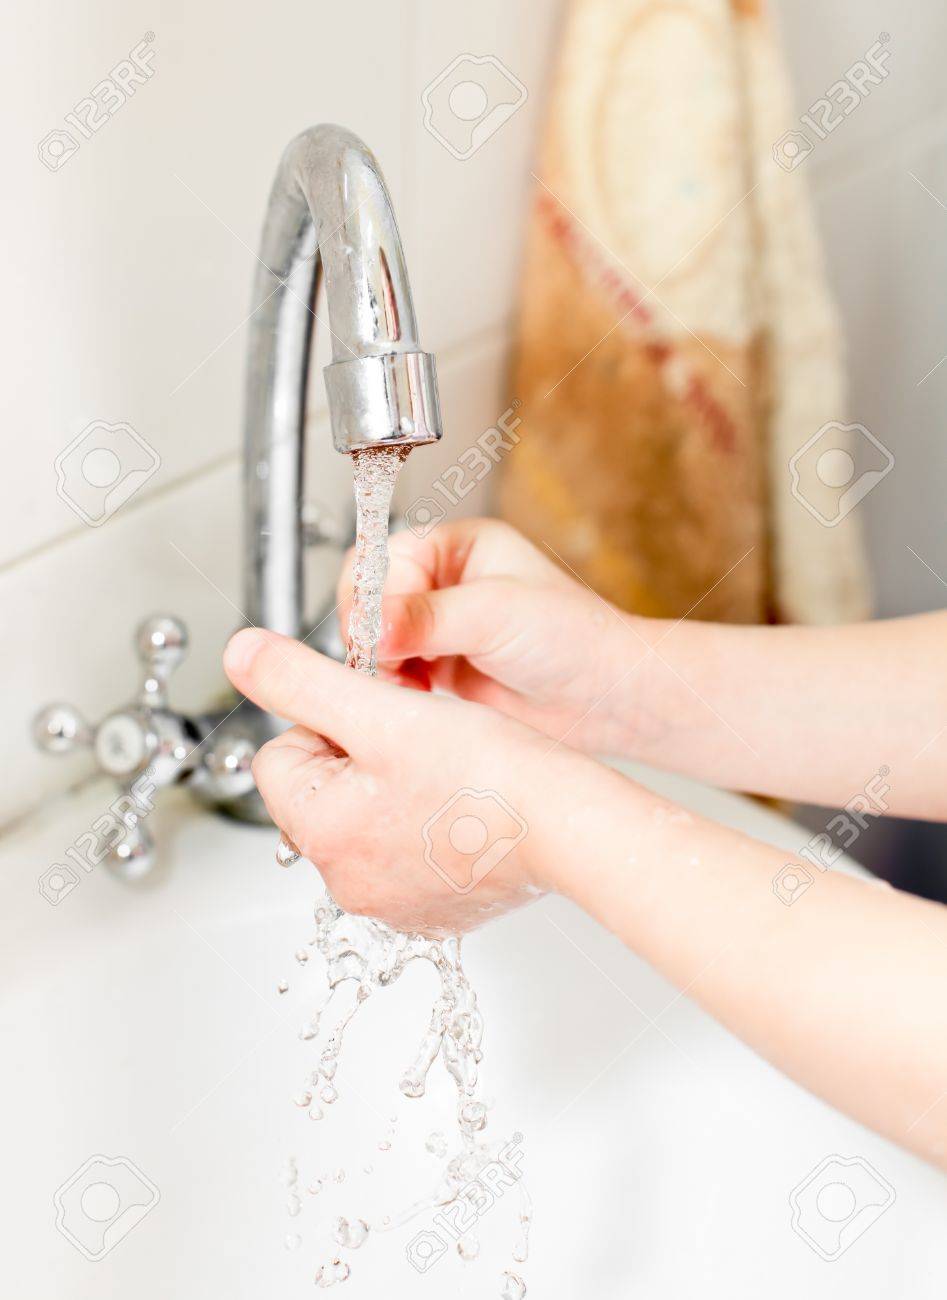 Little girl washing her hands in bathroom, shallow focus Stock Photo - 9373163